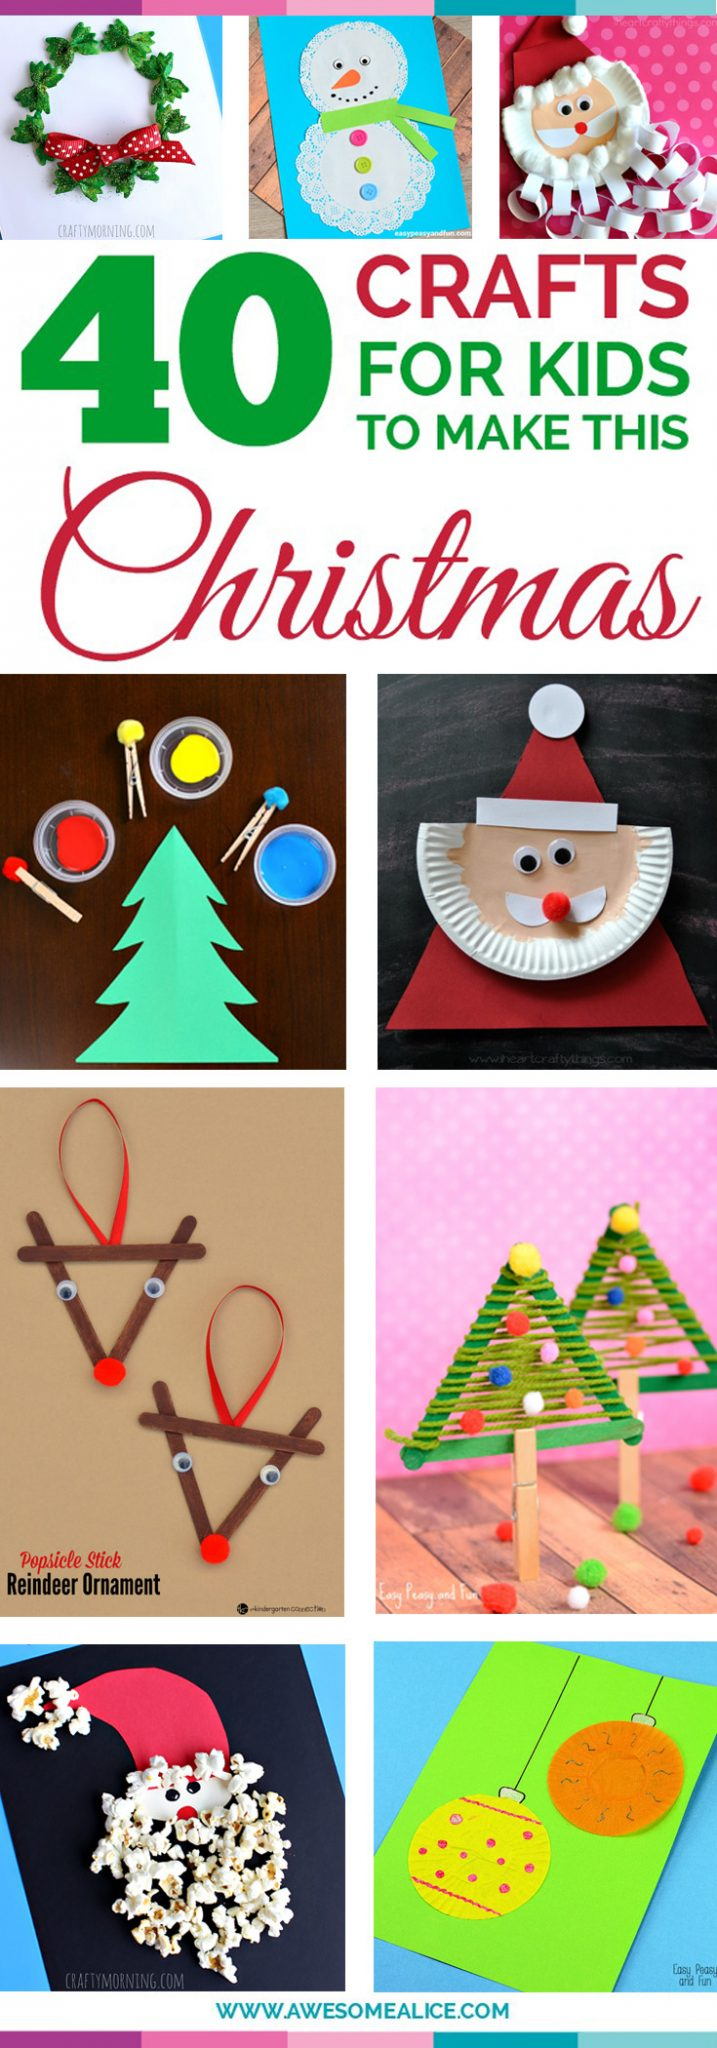 Top 40 Easy And Fun Christmas Crafts For Kids To Make